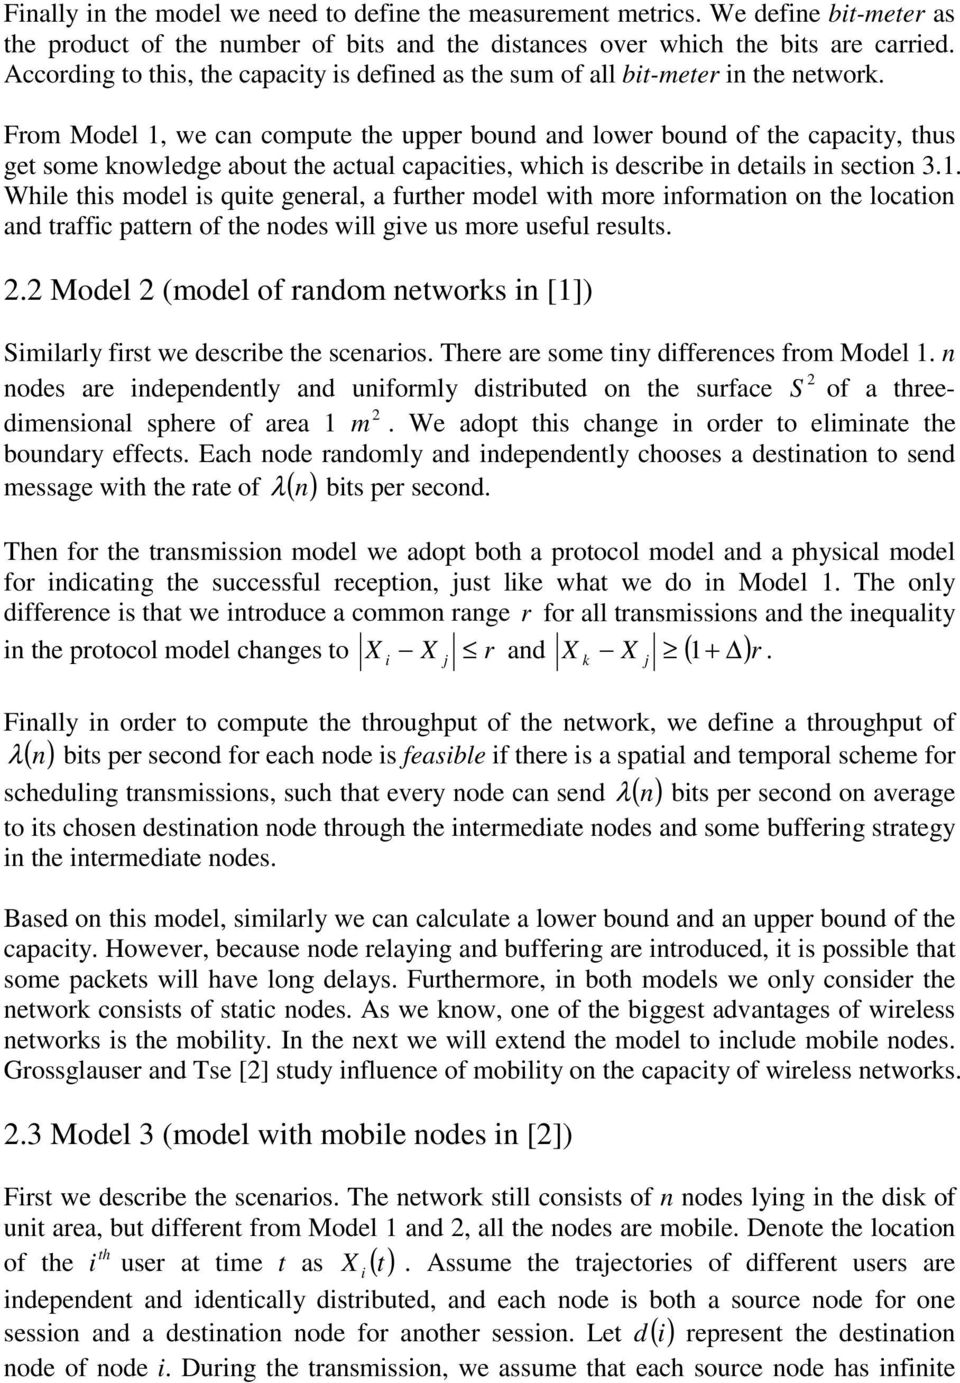 From Model 1, we can compute the upper bound and lower bound of the capacty, thus get some nowledge about the actual capactes, whch s descrbe n detals n secton 3.1. Whle ths model s qute general, a further model wth more nformaton on the locaton and traffc pattern of the nodes wll gve us more useful results.